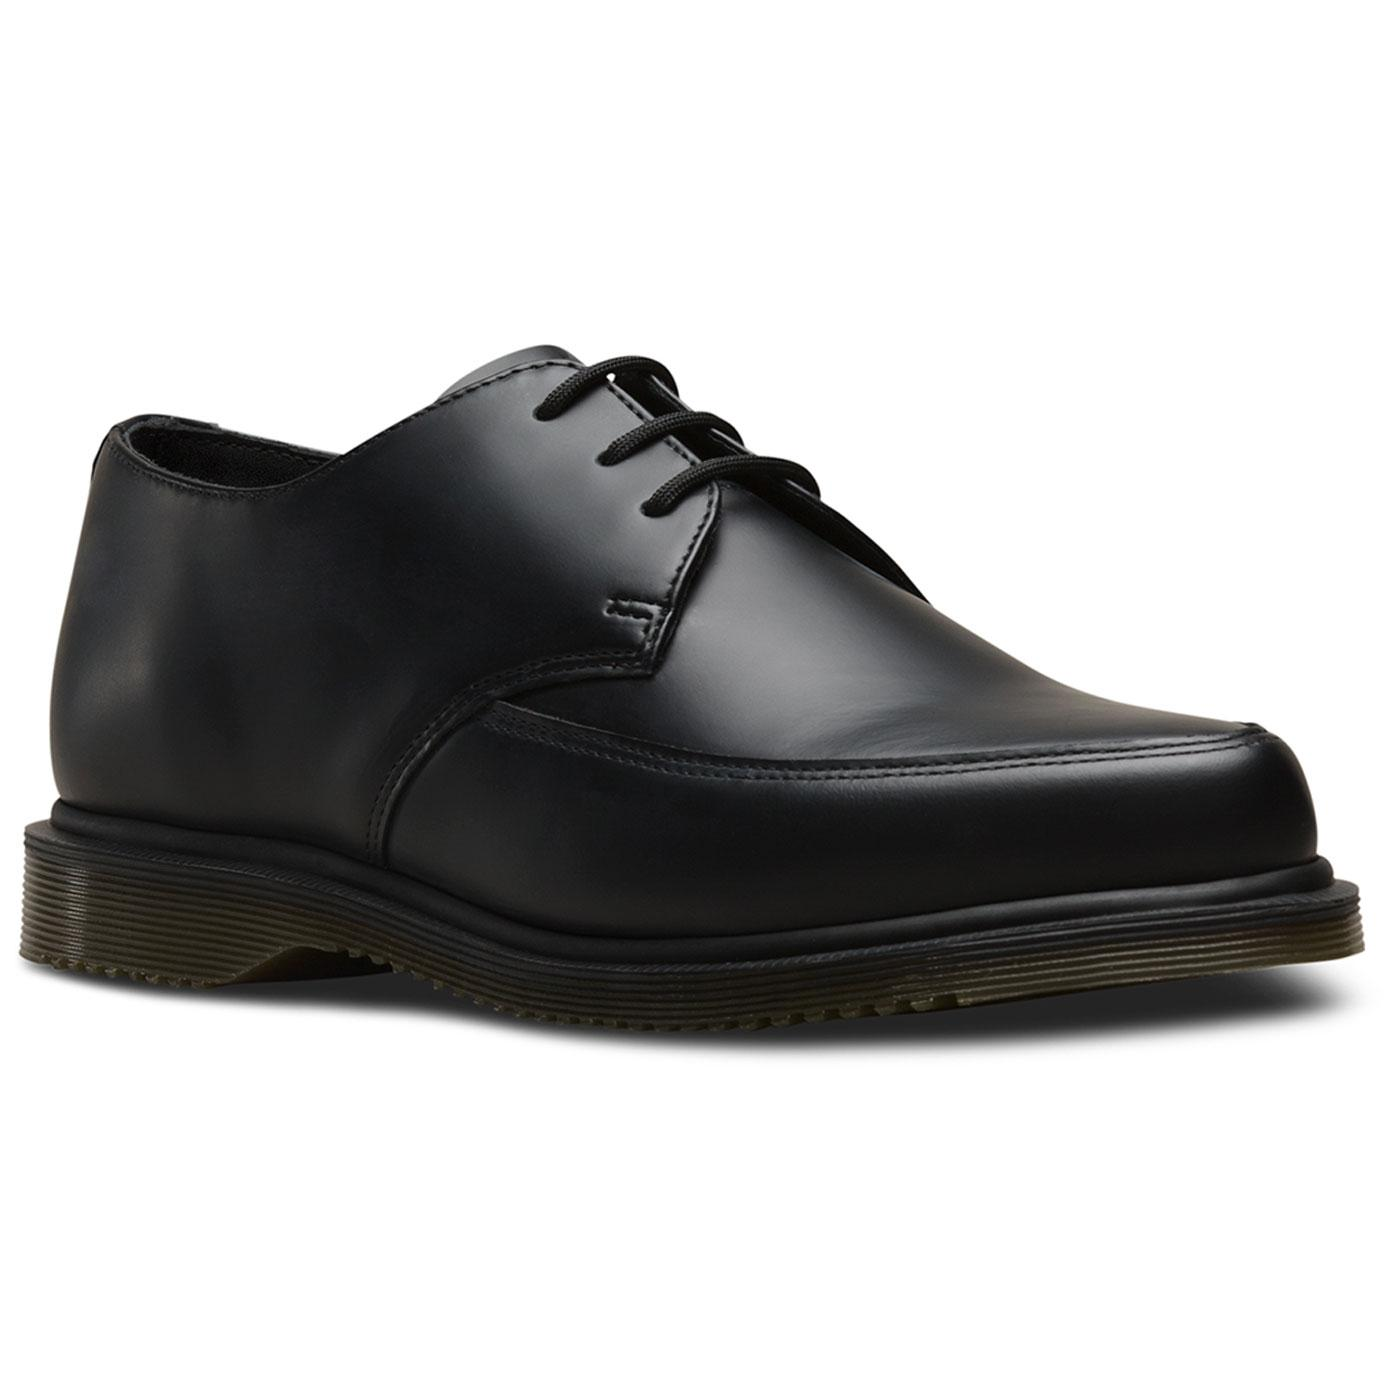 Willis DR MARTENS Mens Retro Smooth Creepers Black